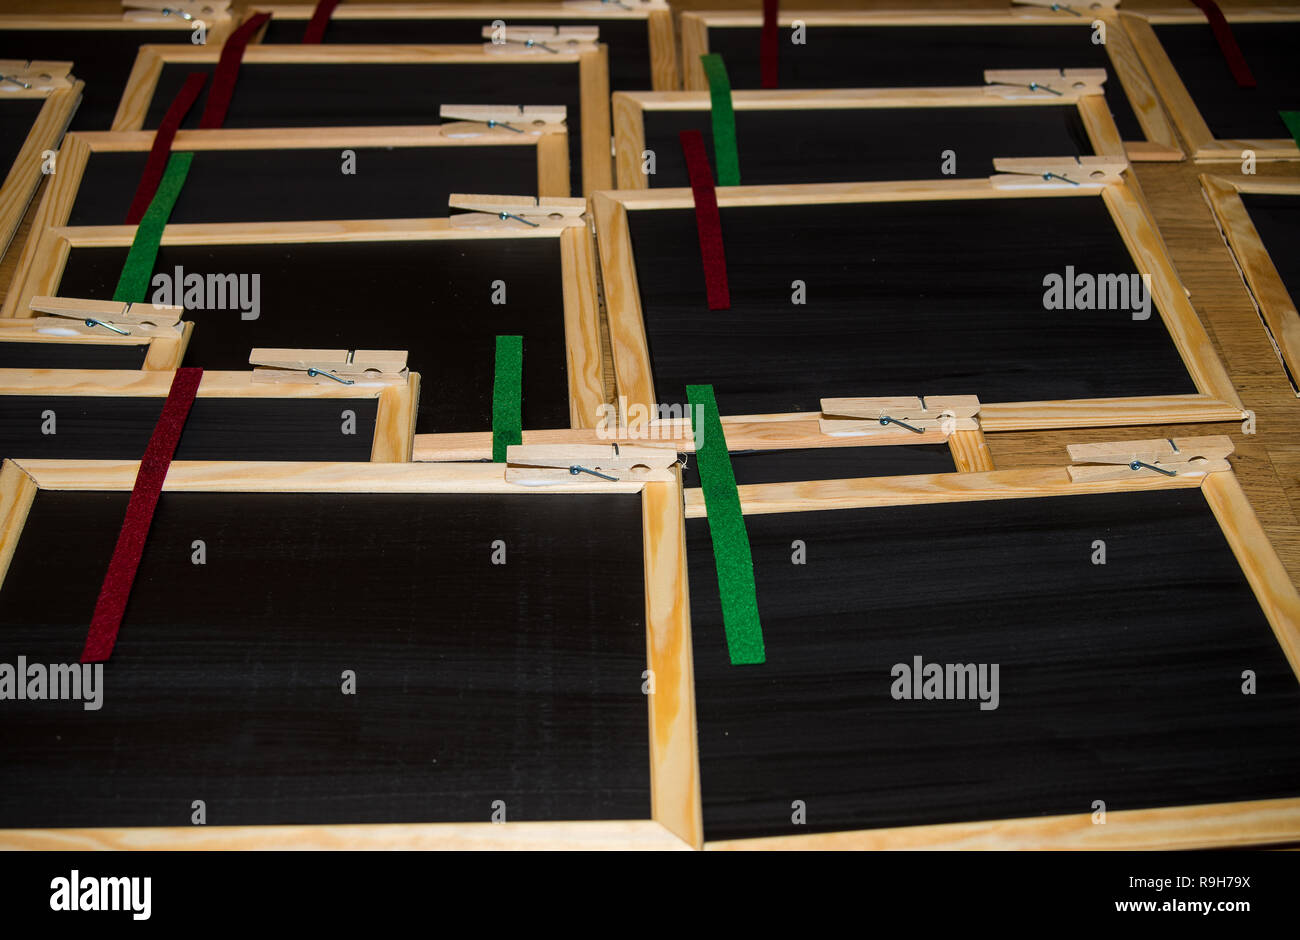 Small blackboards decorated with felt ribbons lie on a table - Stock Image